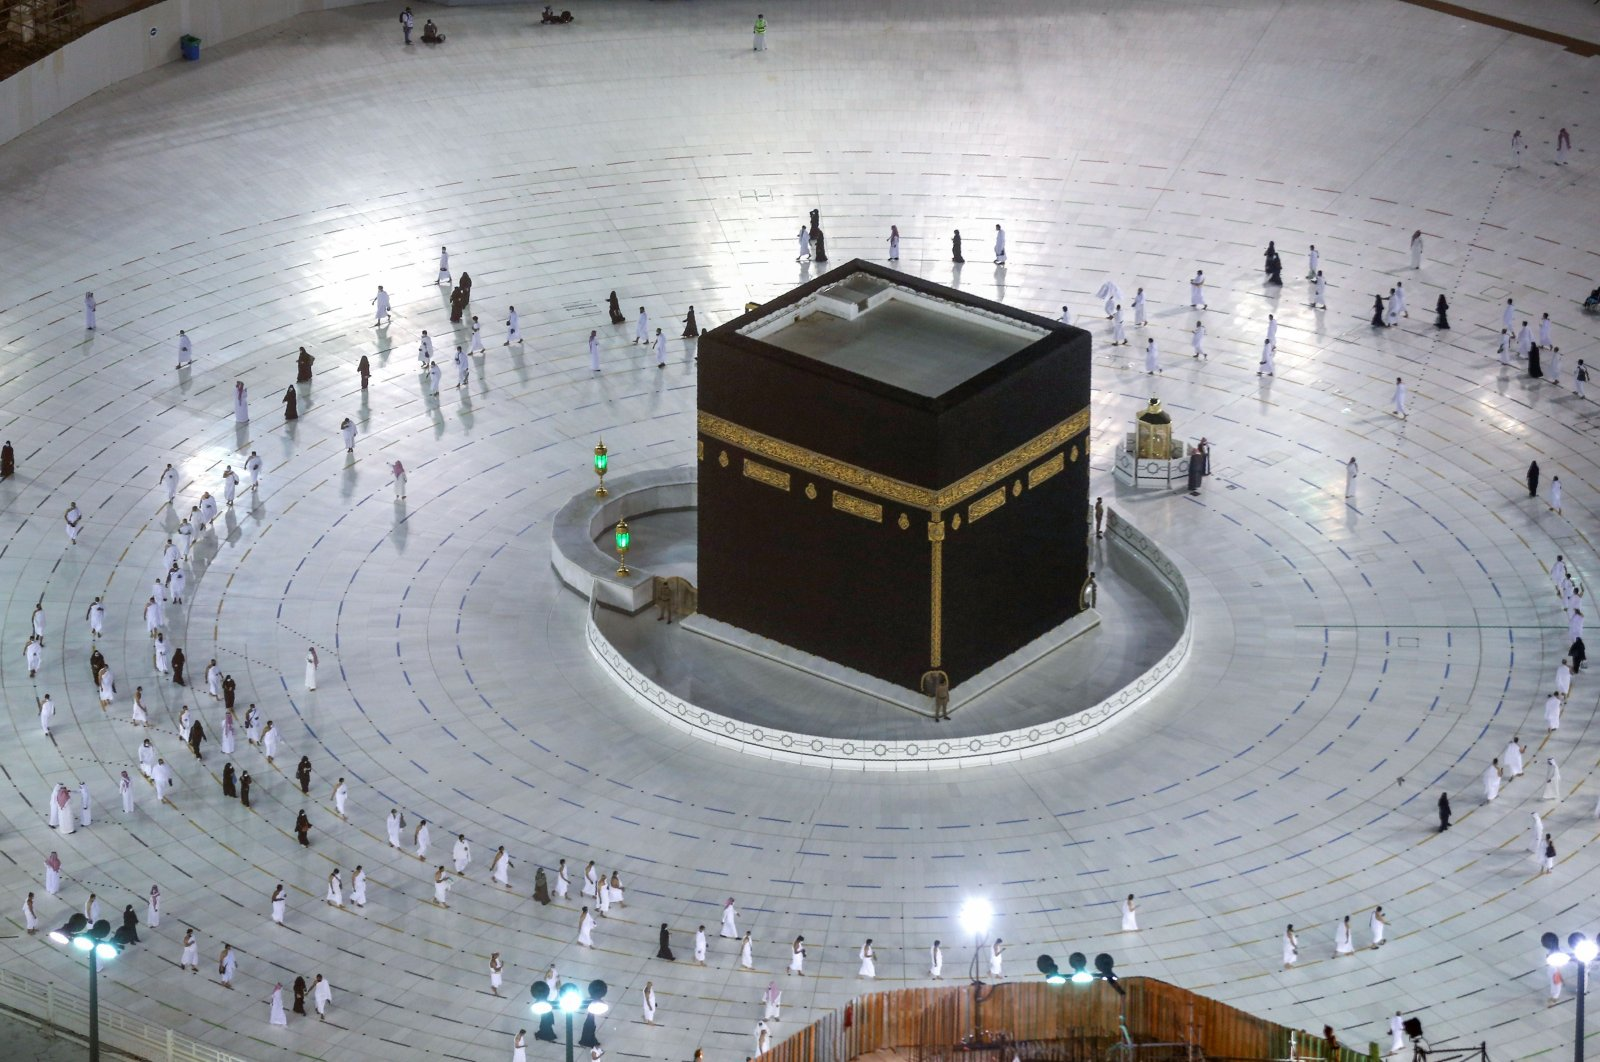 Saudis and foreign residents circumambulate (tawaf) the Kaaba in the Grand Mosque complex as authorities partially resume the year-round umrah for a limited number of pilgrims amid extensive health precautions after a seven-month coronavirus hiatus, Mecca, Saudi Arabia, Oct. 4, 2020. (AFP Photo)